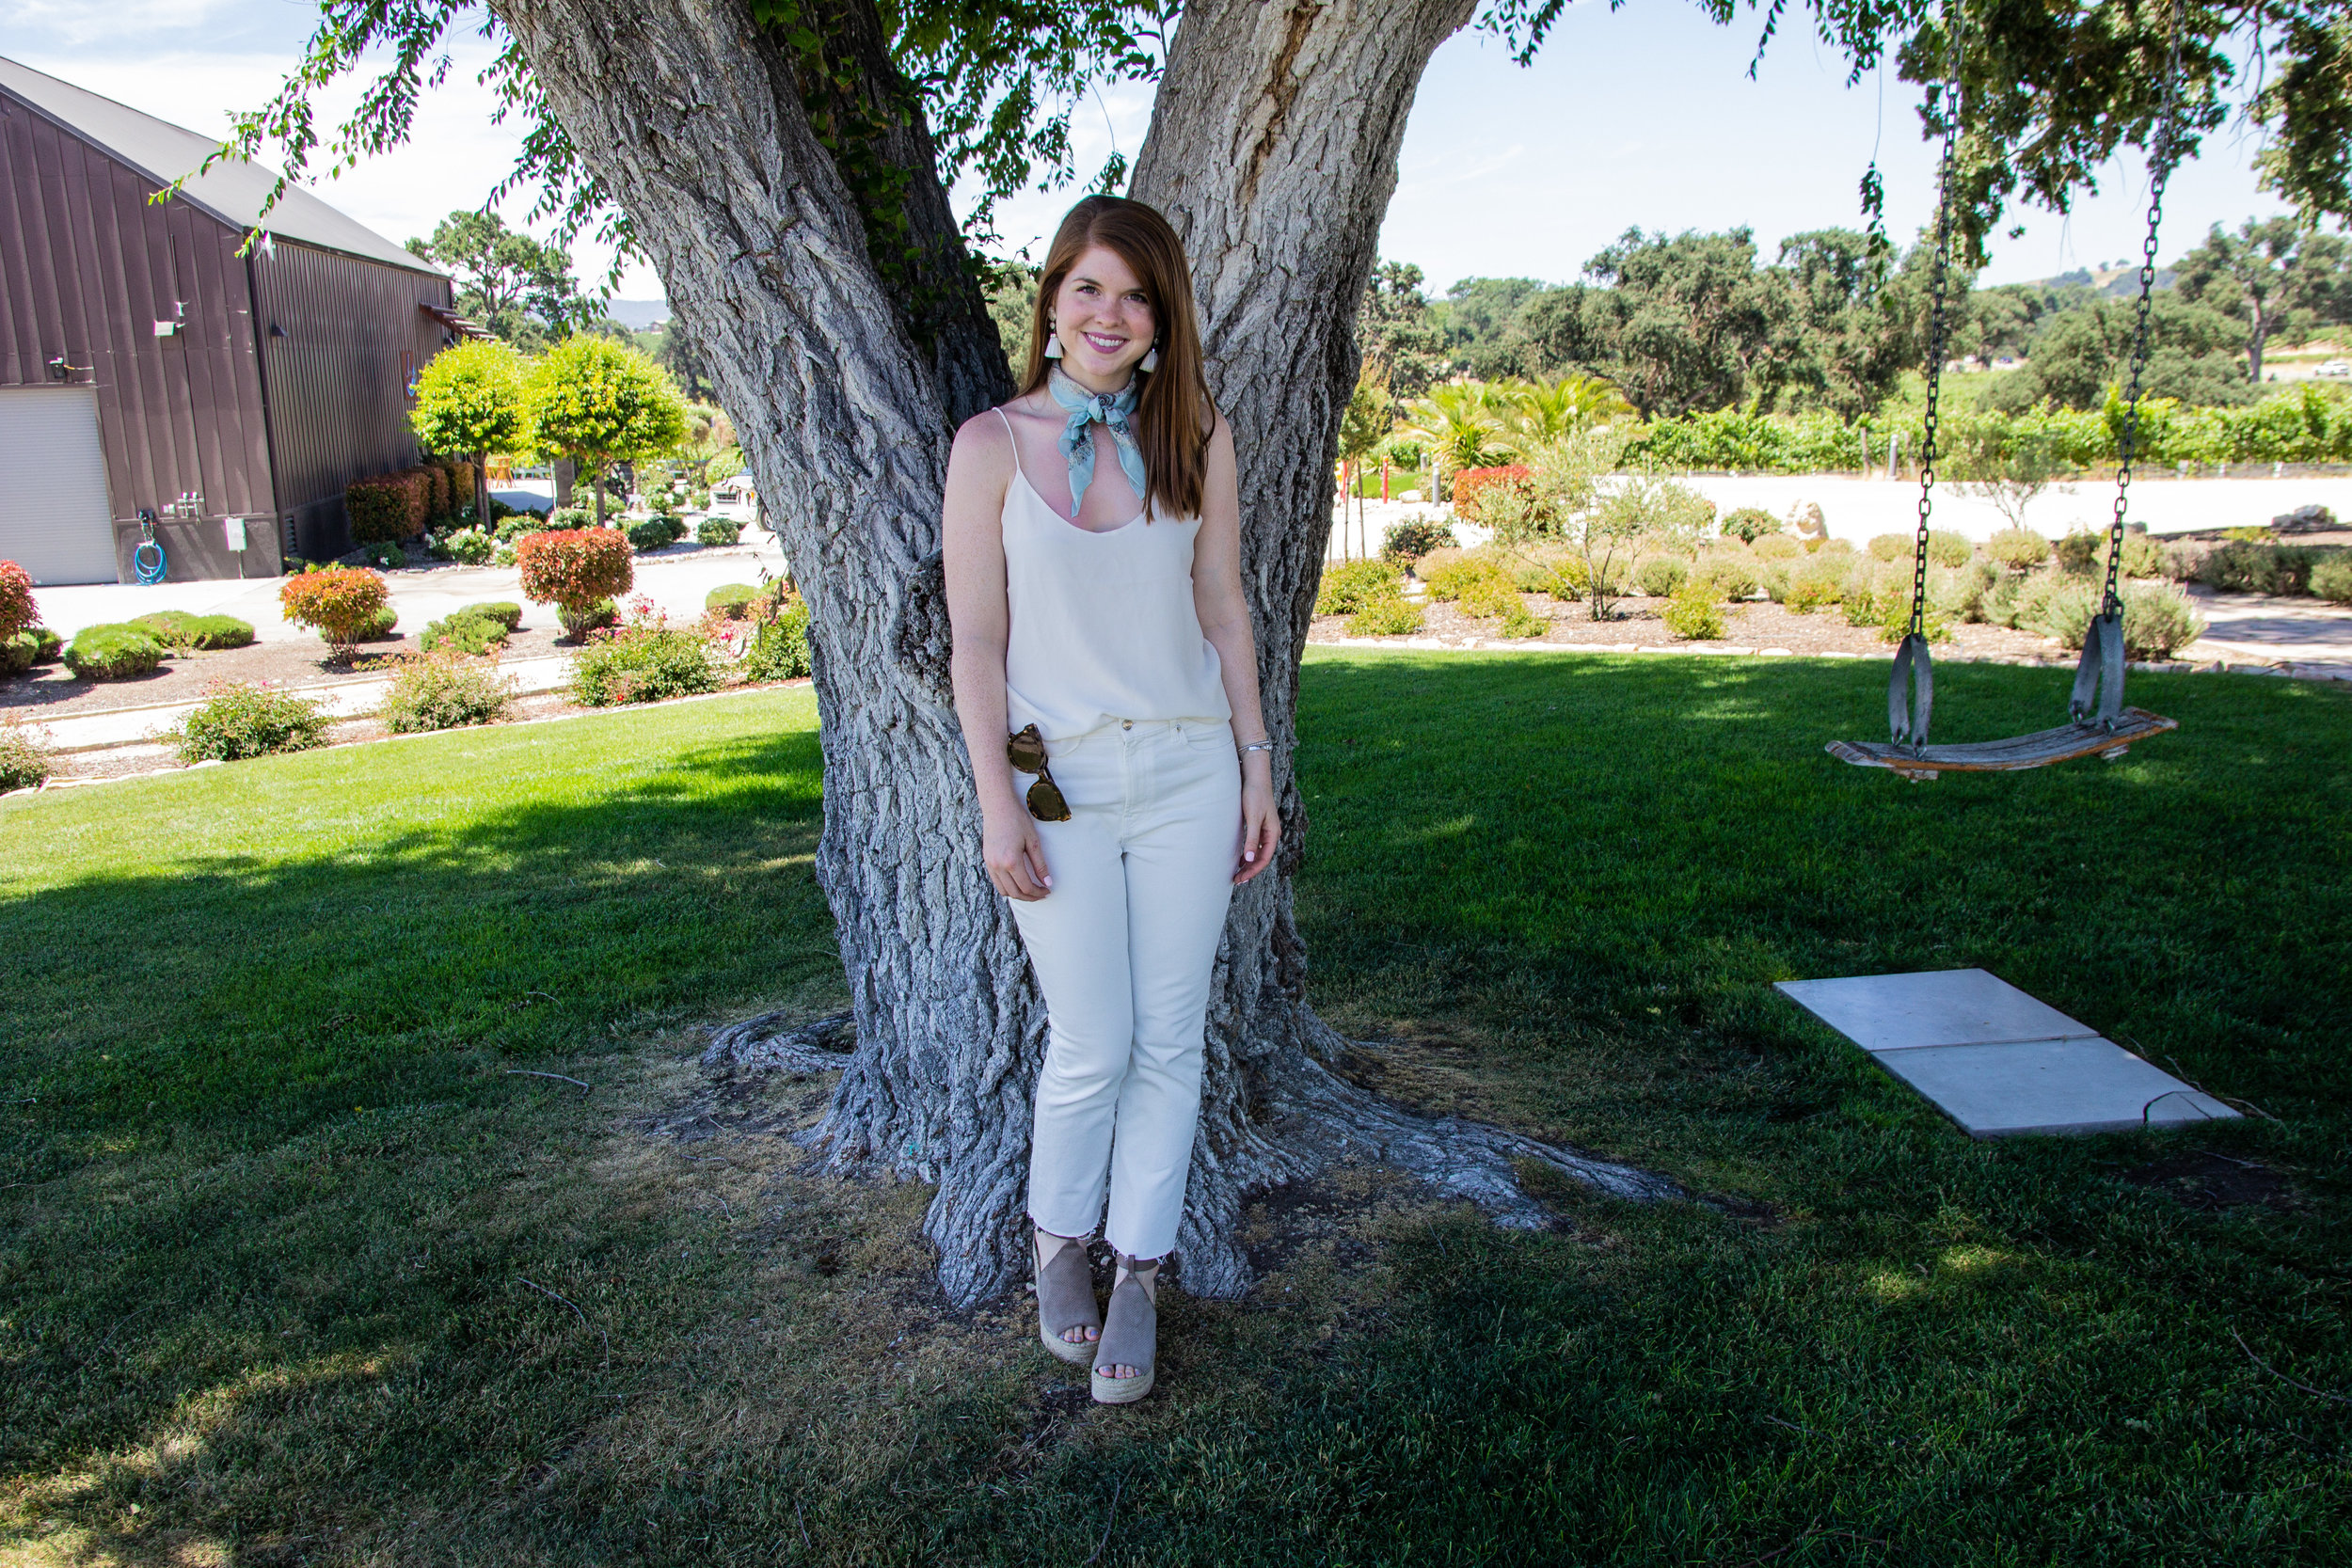 everlane brand overview, ethical fashion, lments of style, ellespann, transparency in fashion, marc fisher annie wedges, kendra scott denise earrings, paso robles, j dusi winery